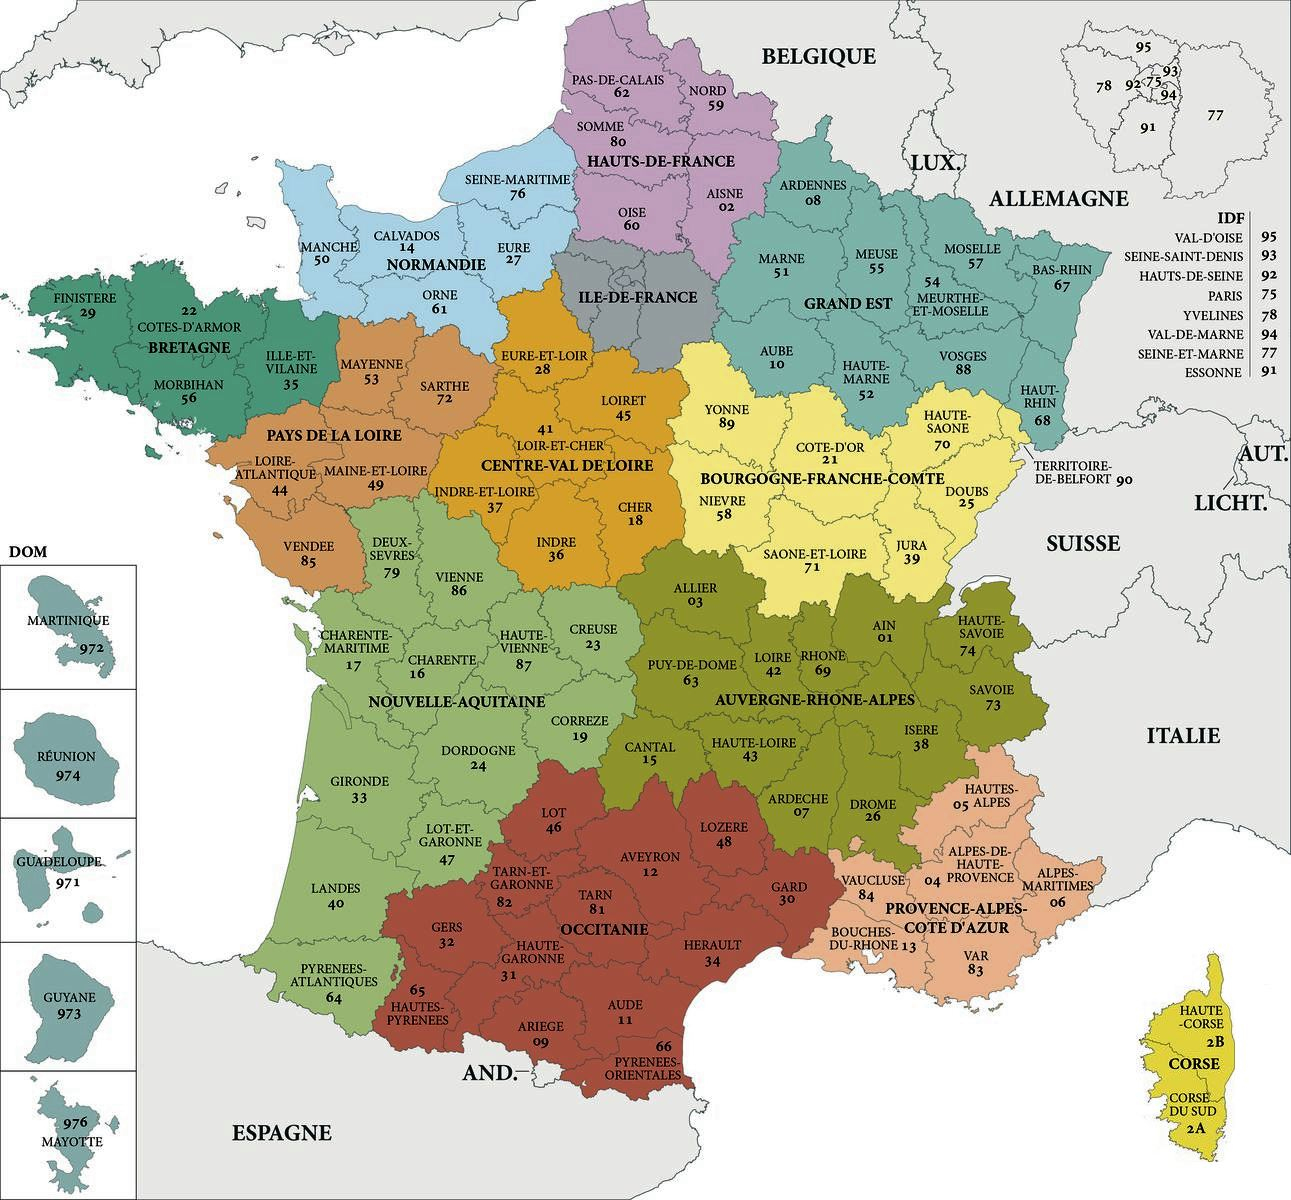 Carte De France Departements : Carte Des Départements De France destiné Departement Et Chef Lieu